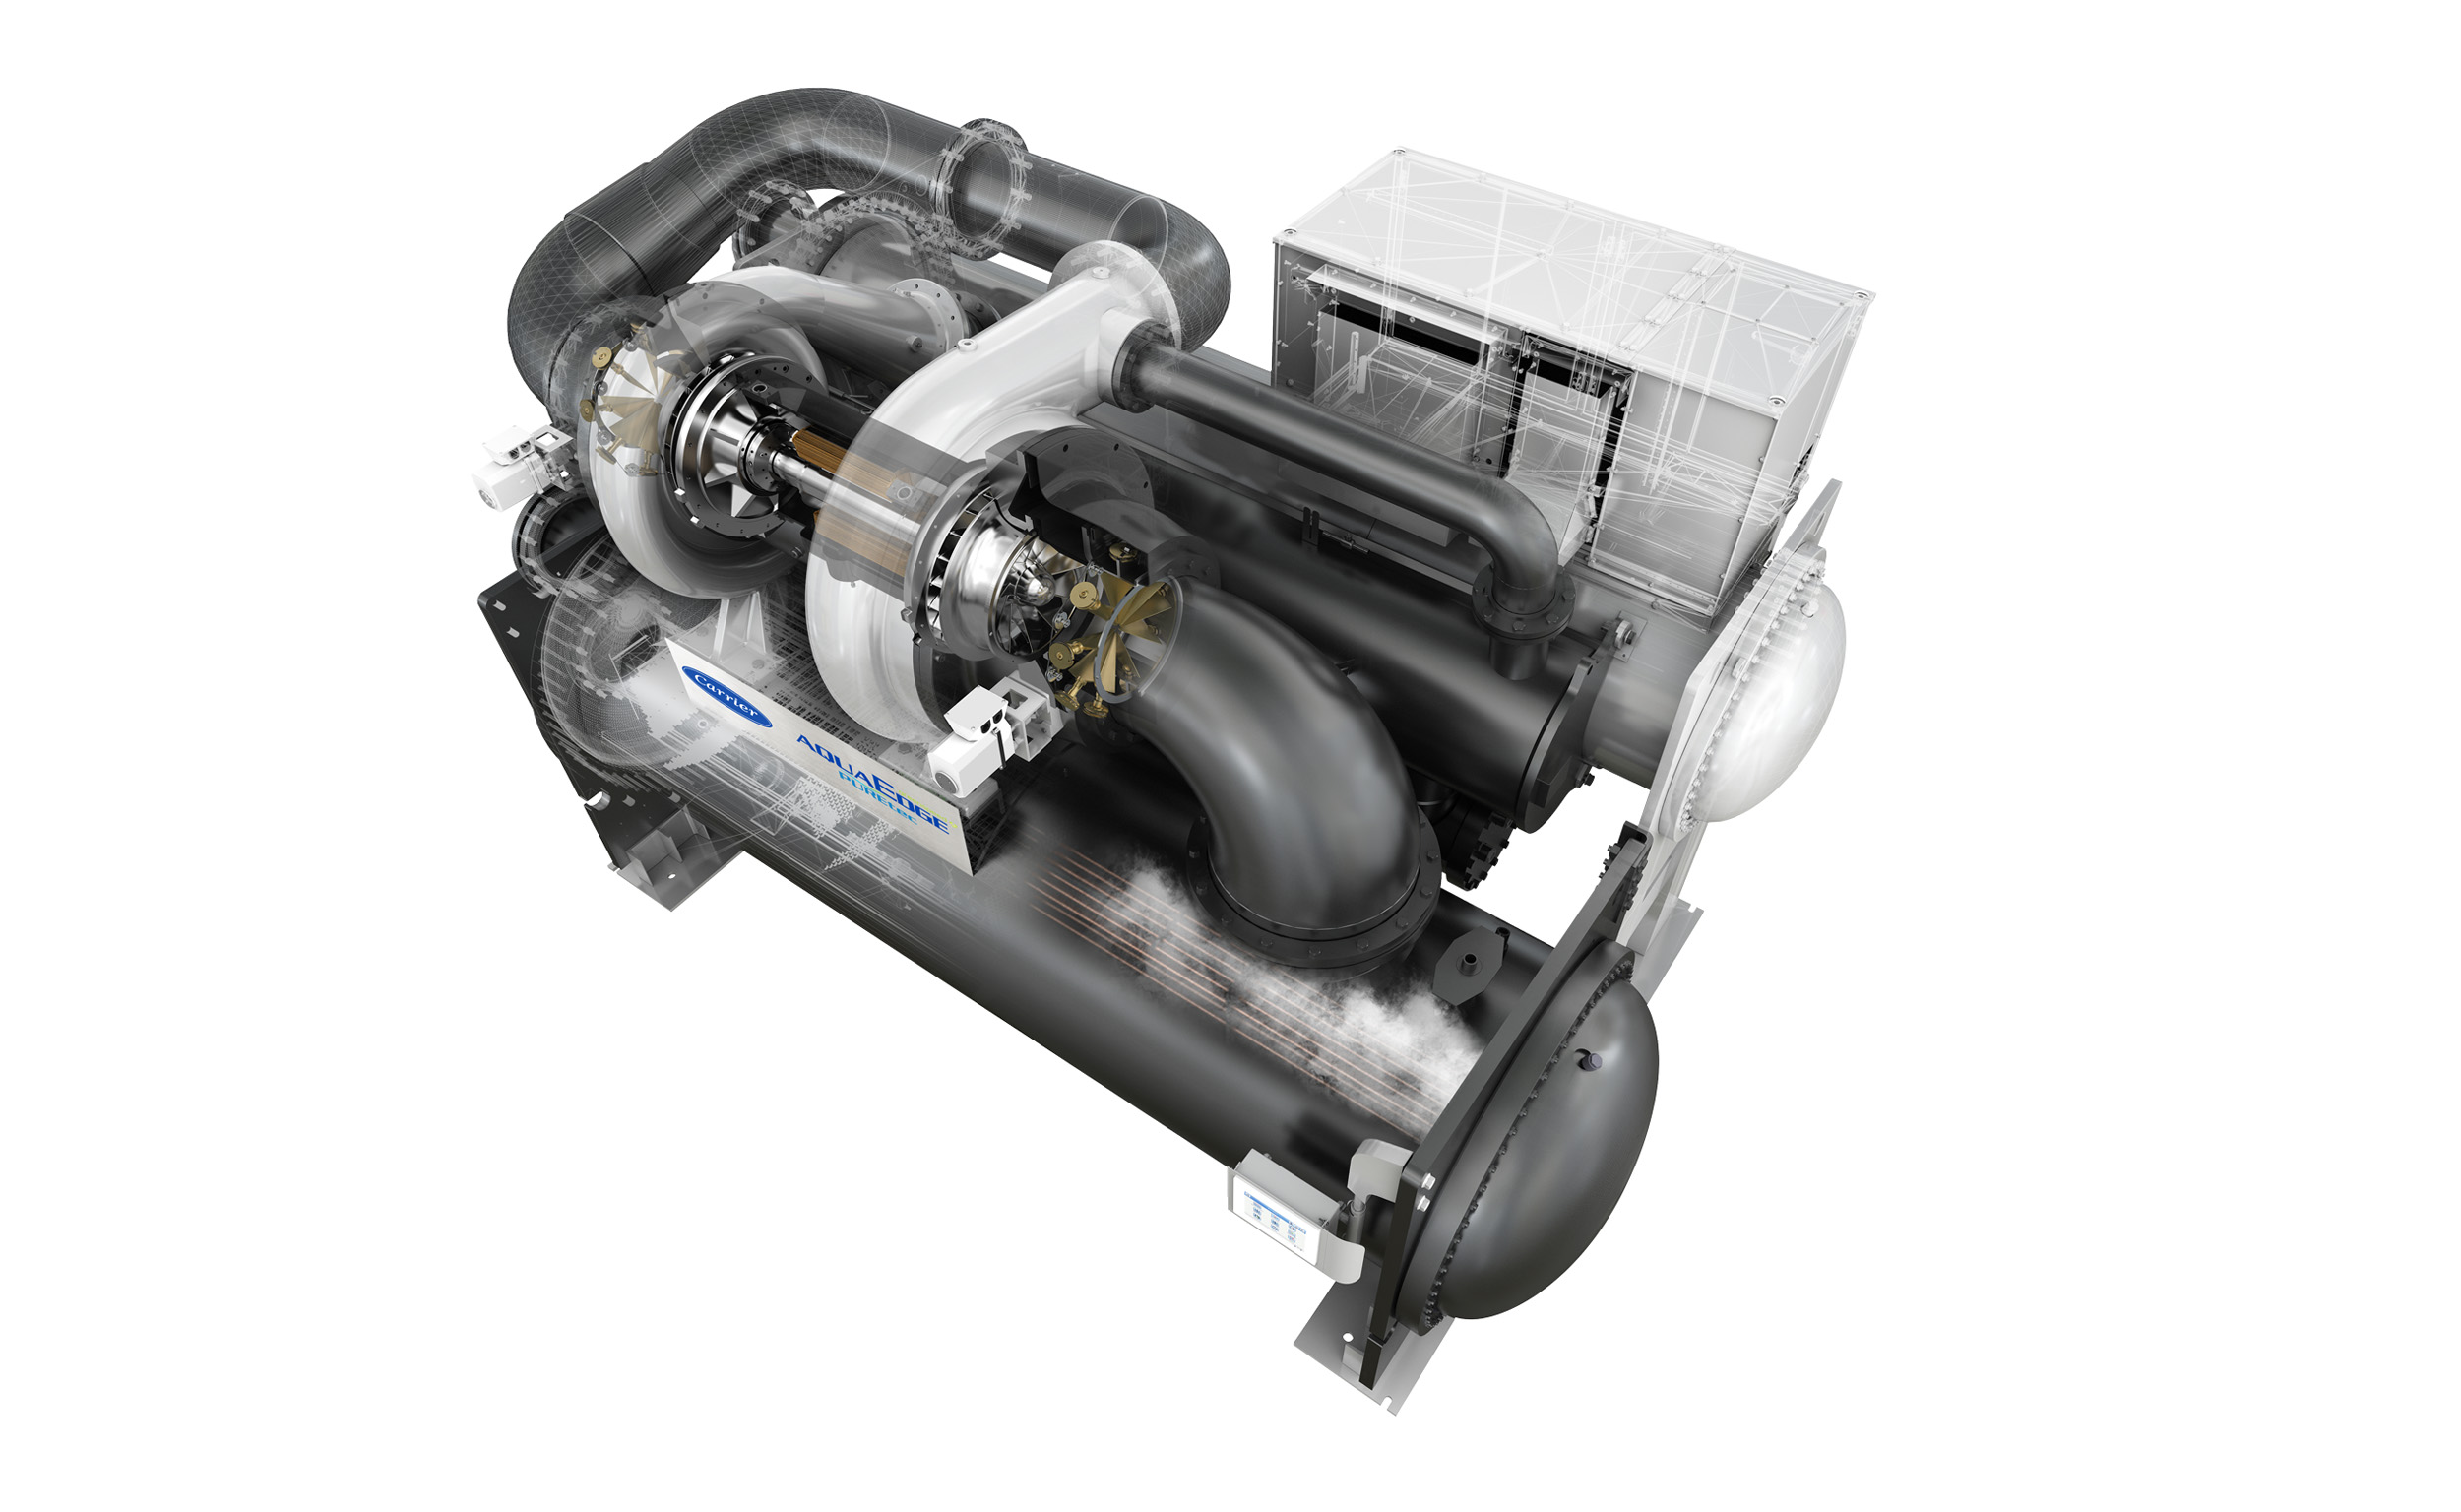 The 19DV is the most environmentally responsible chiller Carrier has ever made. That's due to world-class efficiency and the use of the ultra-low GWP refrigerant R-1233zd(E).